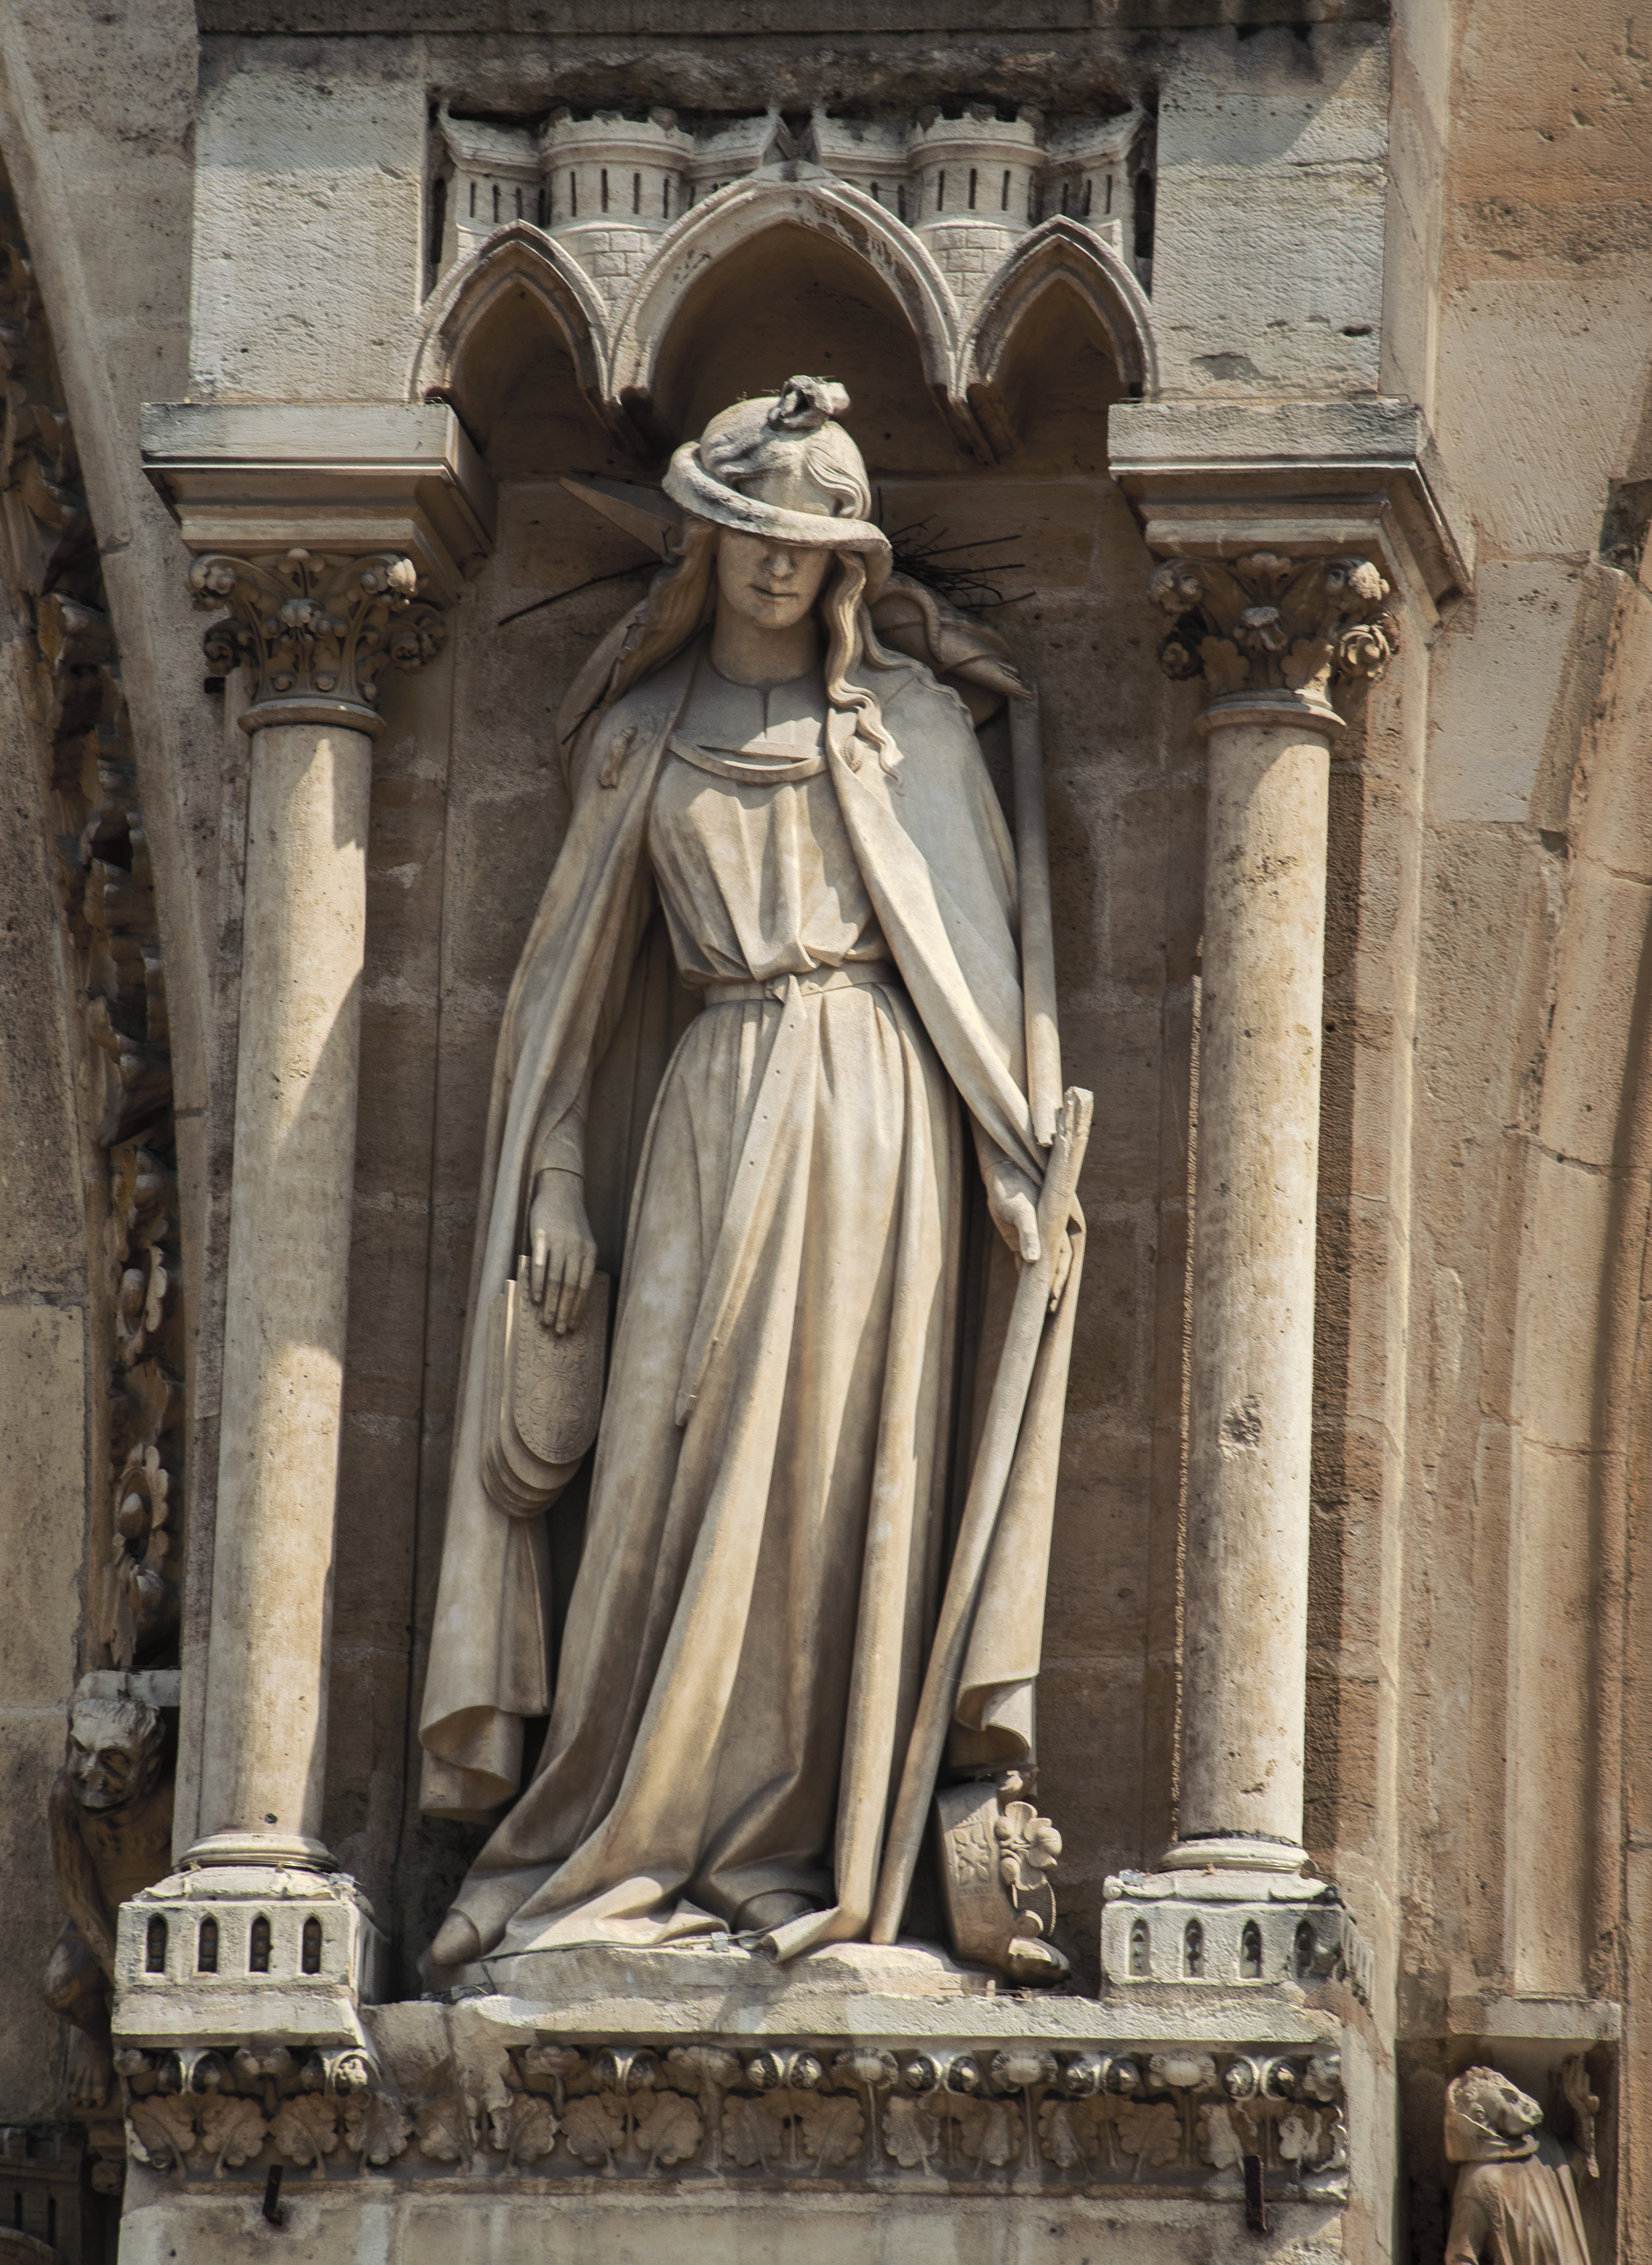 Statue_IN_FRONT-OF_NOTRE_DAME0242.jpg